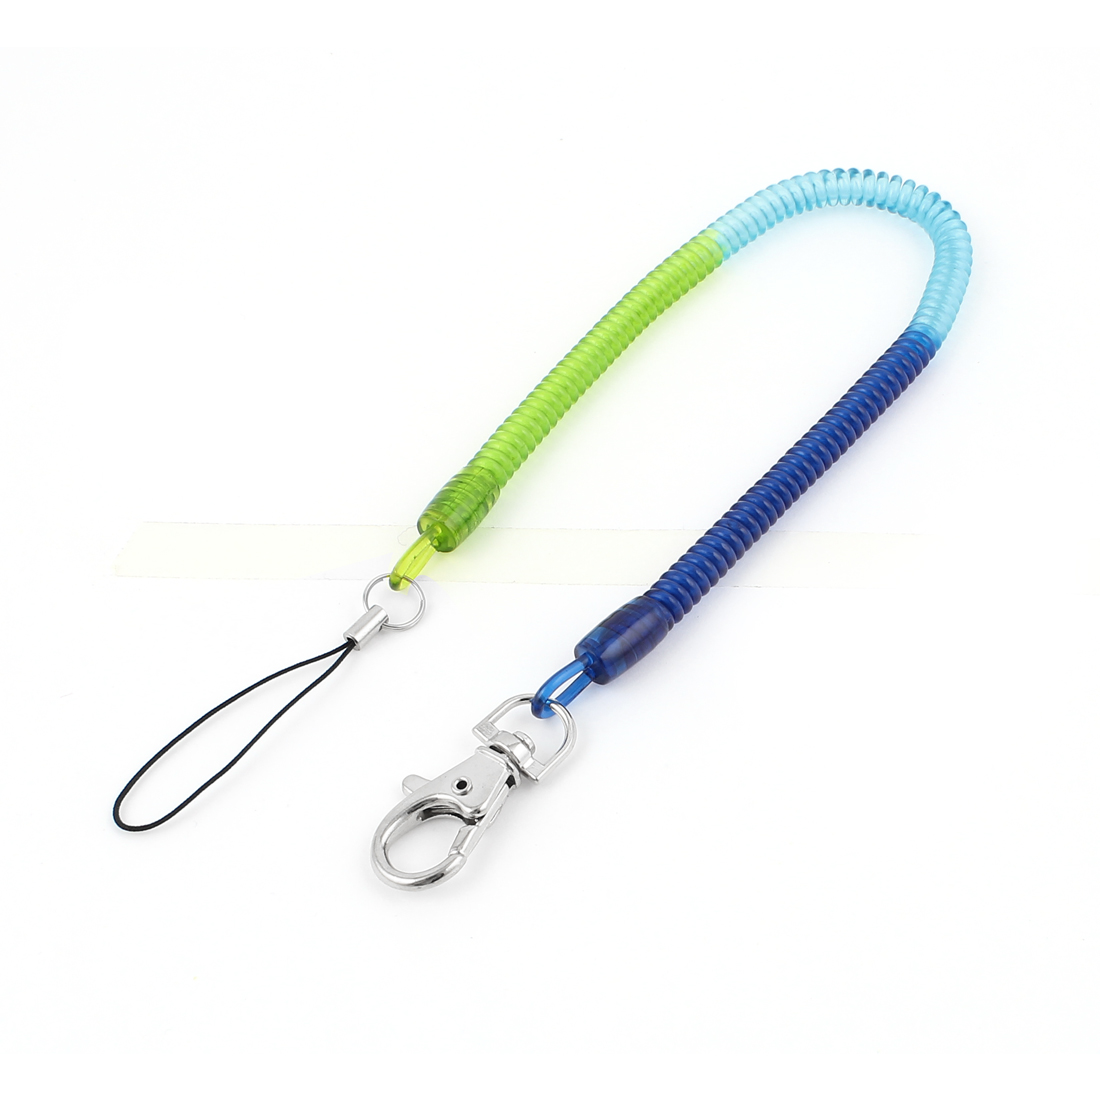 Flexible Lobster Clasp Stretch Coiled Cord Keychain Strap Key Holder 35cm Length